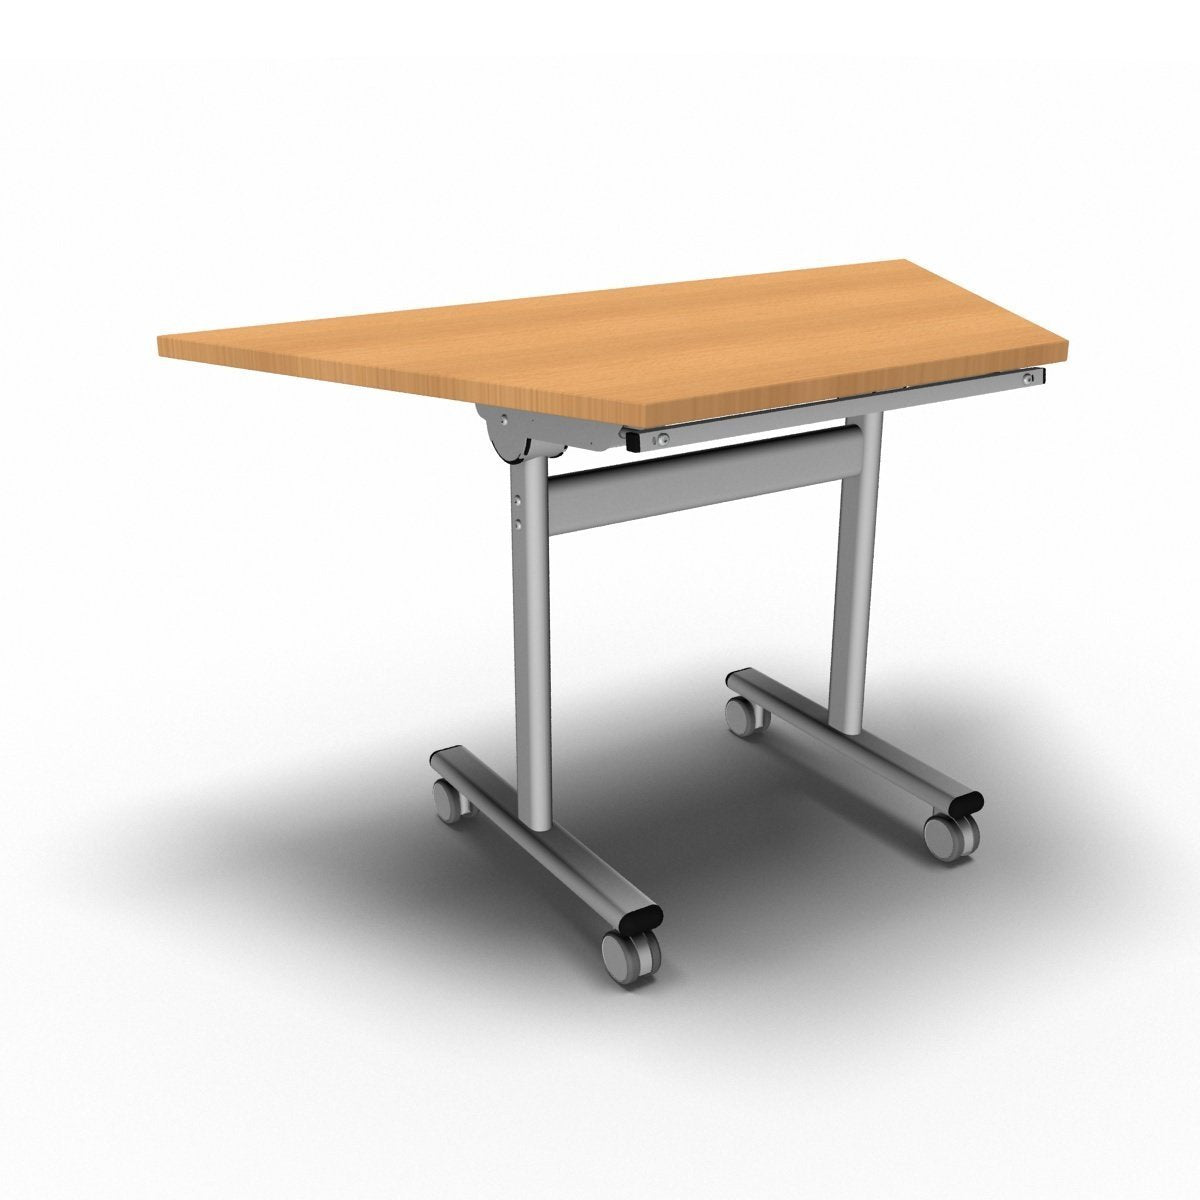 Table 1200 x 600 x 720mm / Trapezoidal / Beech Synergy Flip Top Tables